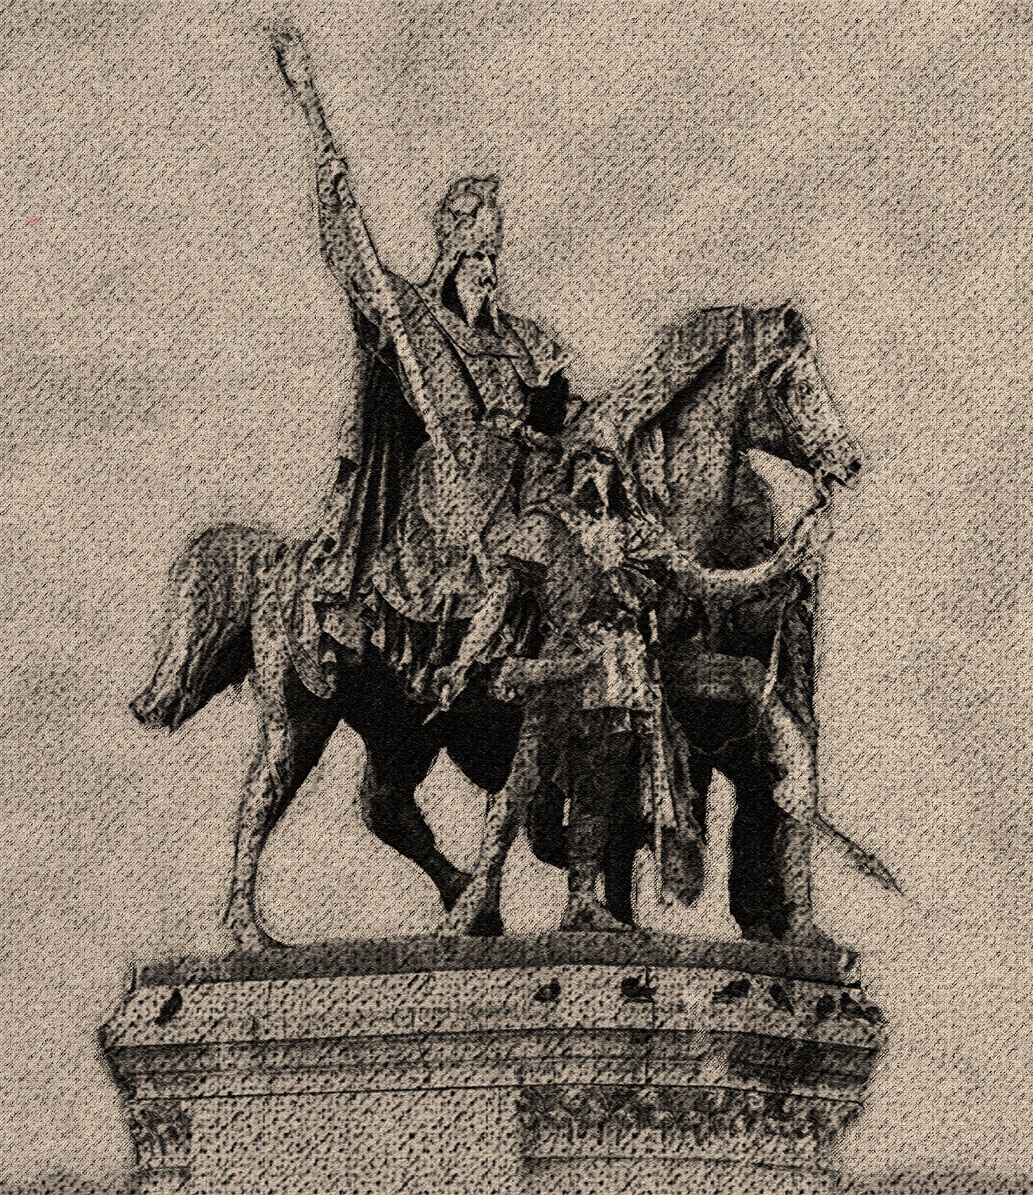 Photoshop – Charlemagne in charcoal